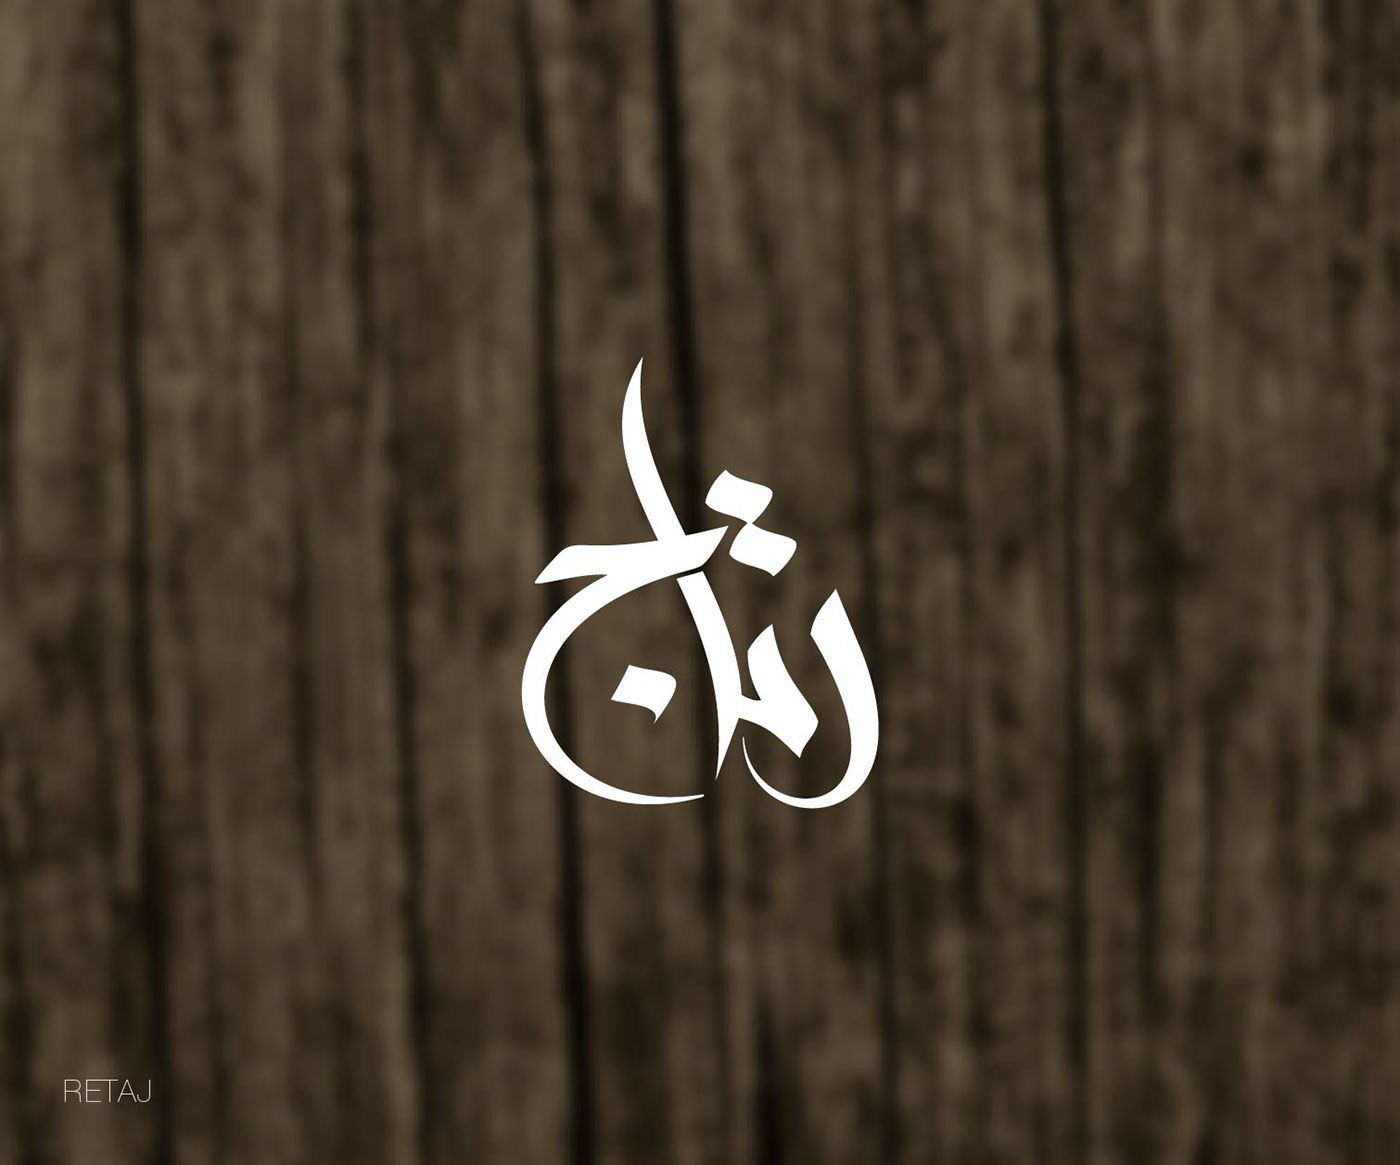 Freestyle Calligraphy 01 On Behance Calligraphy Name Arabic Calligraphy Art Urdu Calligraphy